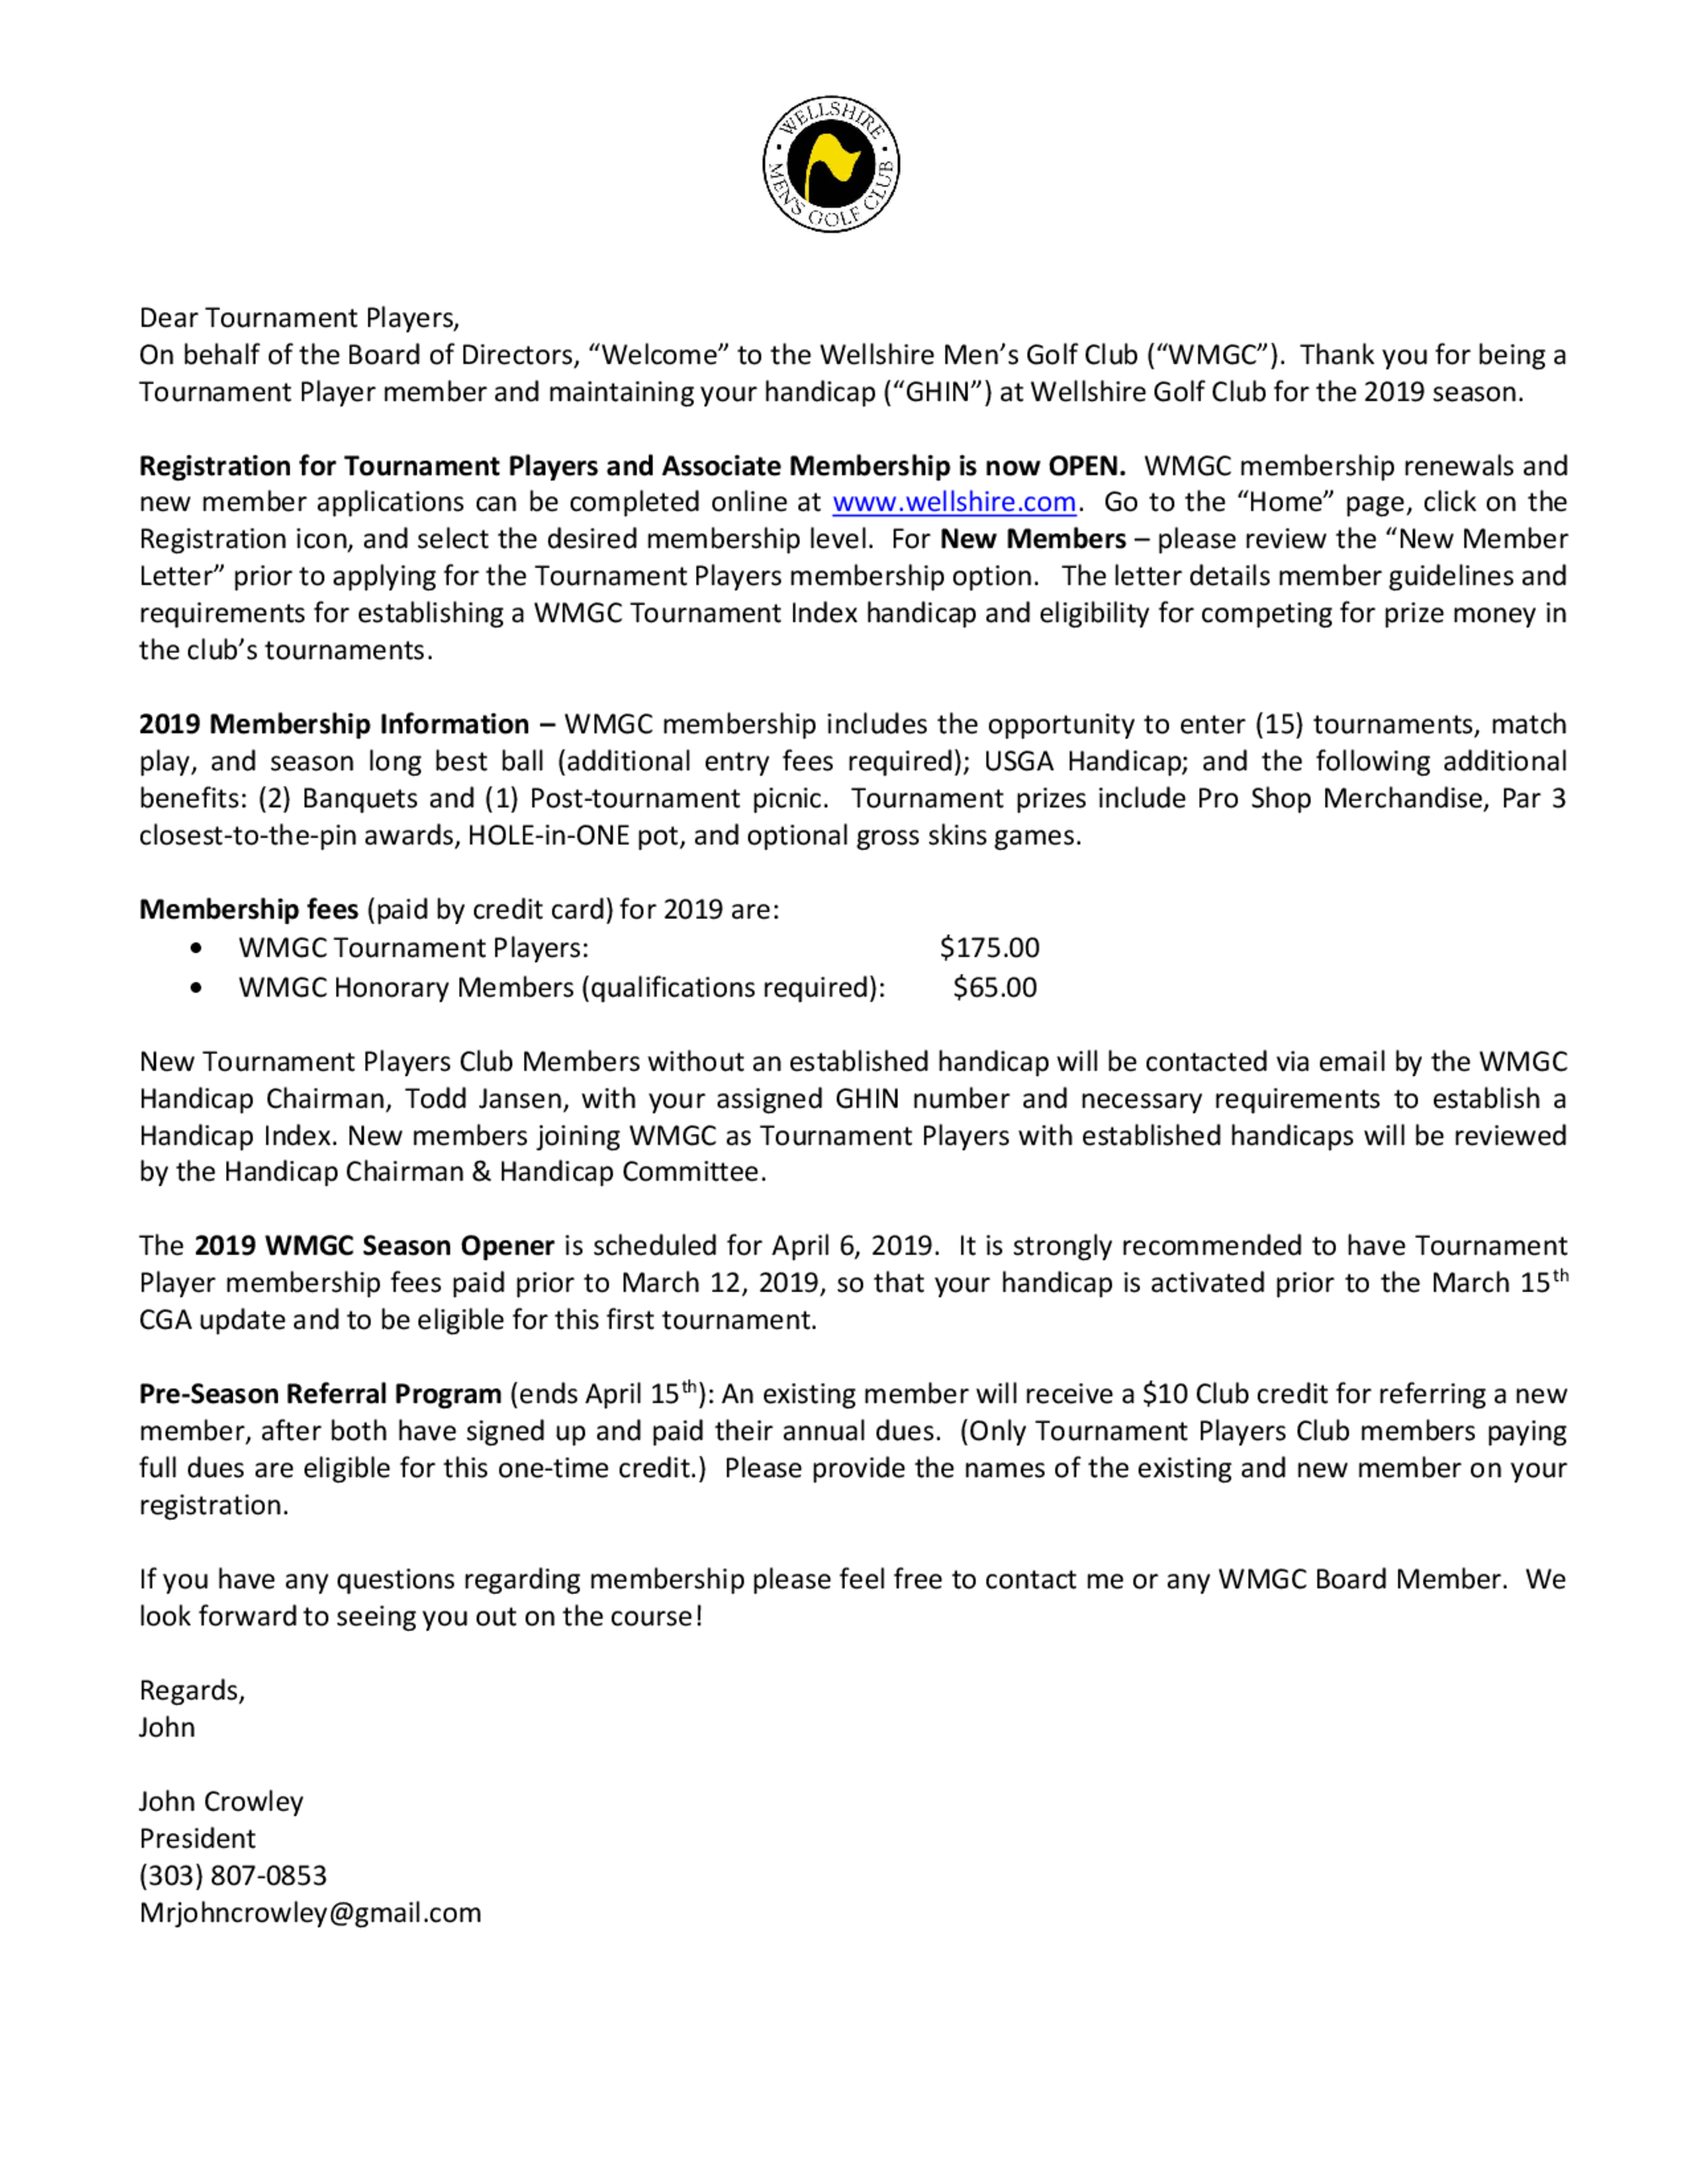 2019 wmgc tourn players welcome letter 2.6.19  2  1